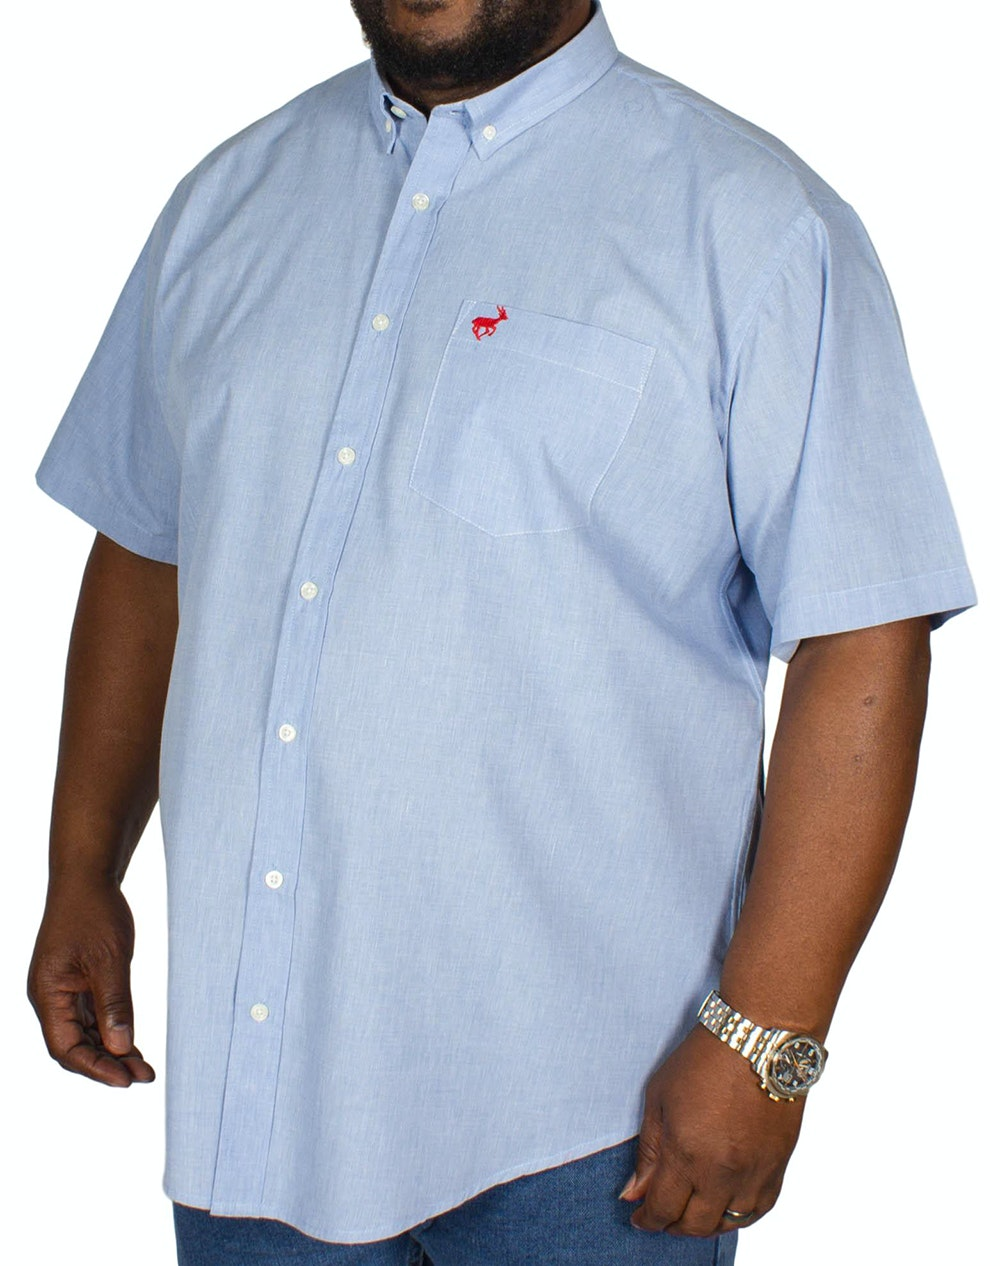 Bigdude Short Sleeve Textured Shirt Blue